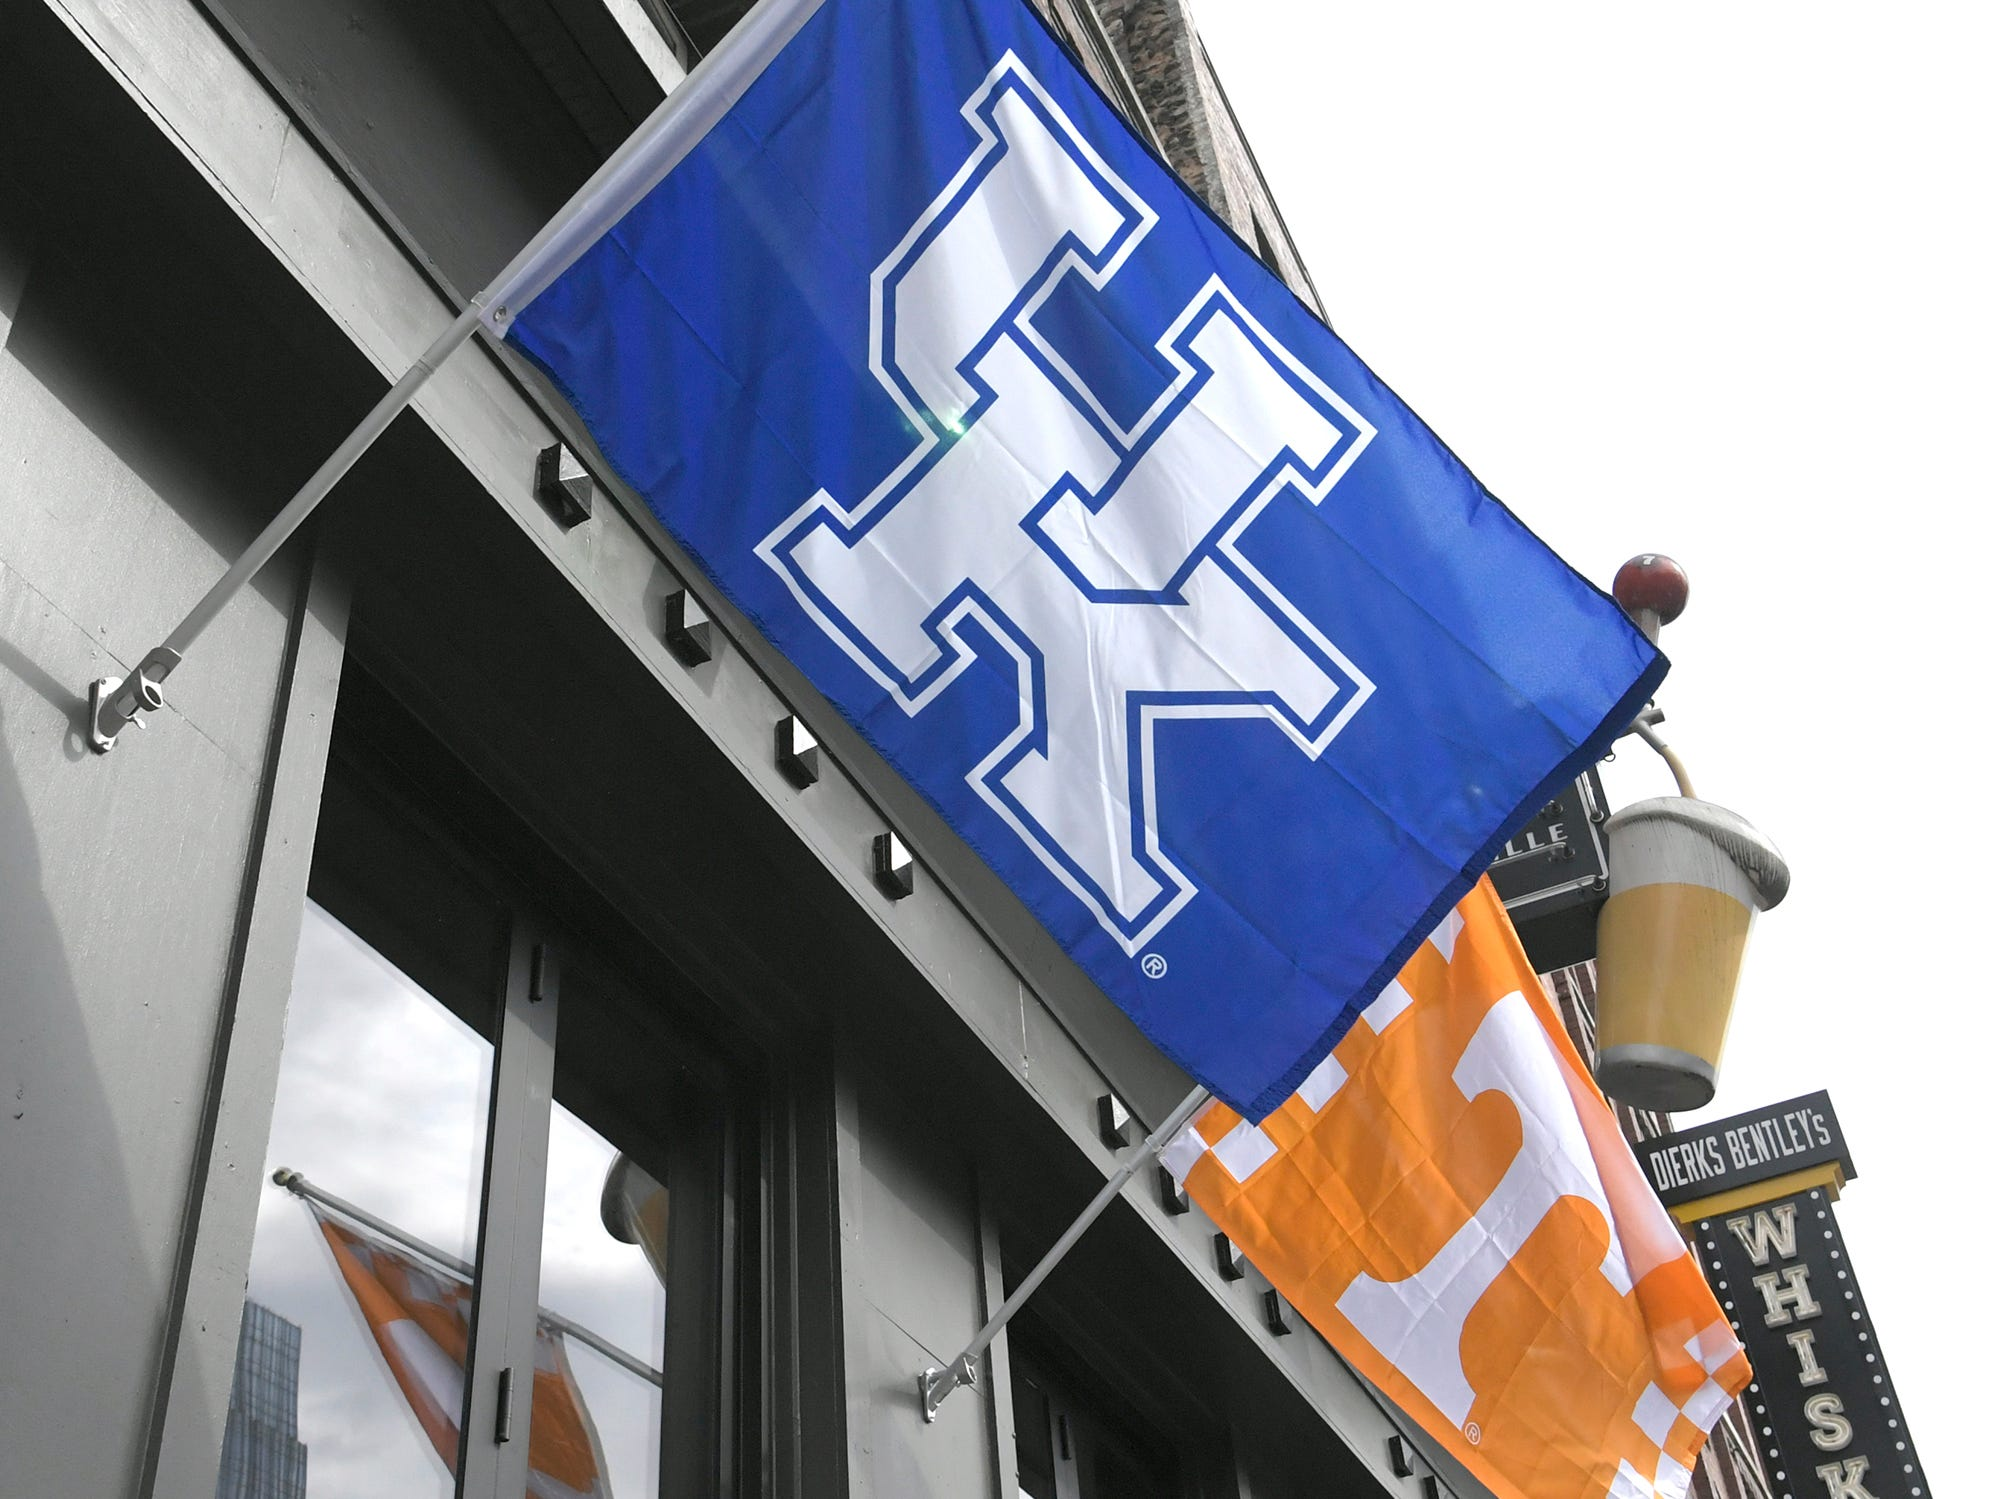 Kentucky and Tennessee flags fly along Broadway during the SEC Mens Basketball Tournament in Nashville on Thursday, March 14, 2019.